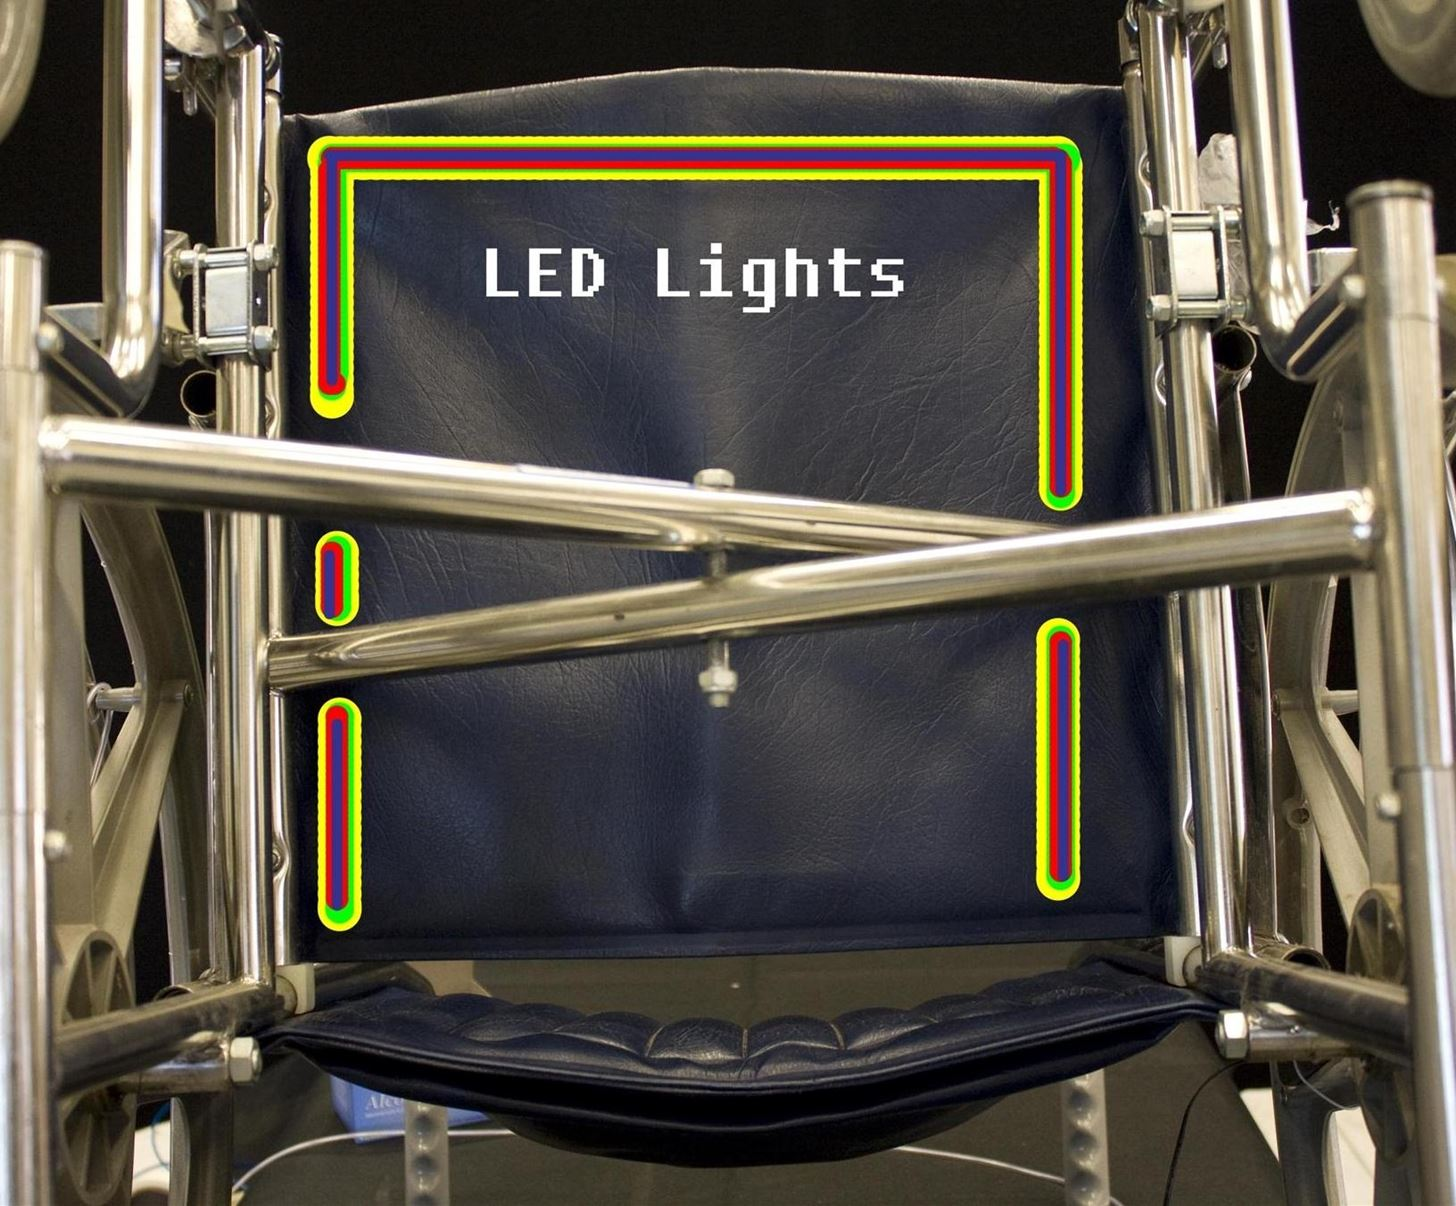 illuminate wheelchair for safety using el wire led strip.w1456?resize=665%2C551&ssl=1 ez lock wheelchair wiring diagram wiring diagram ez lock wheelchair wiring diagram at gsmportal.co